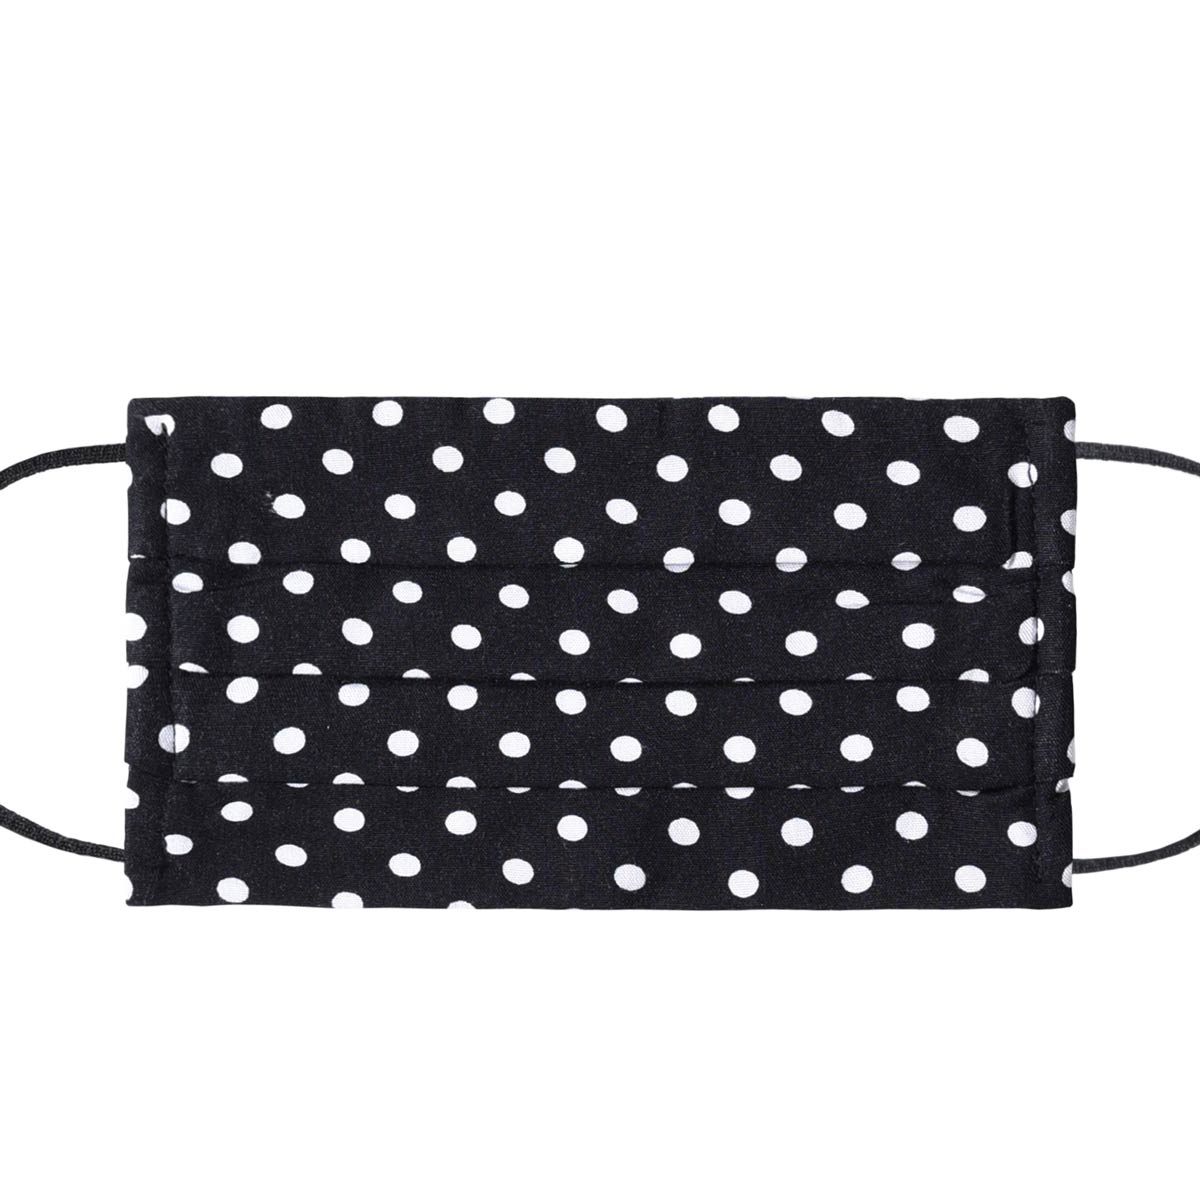 AT-06121-A12-masque-protection-noir-pois